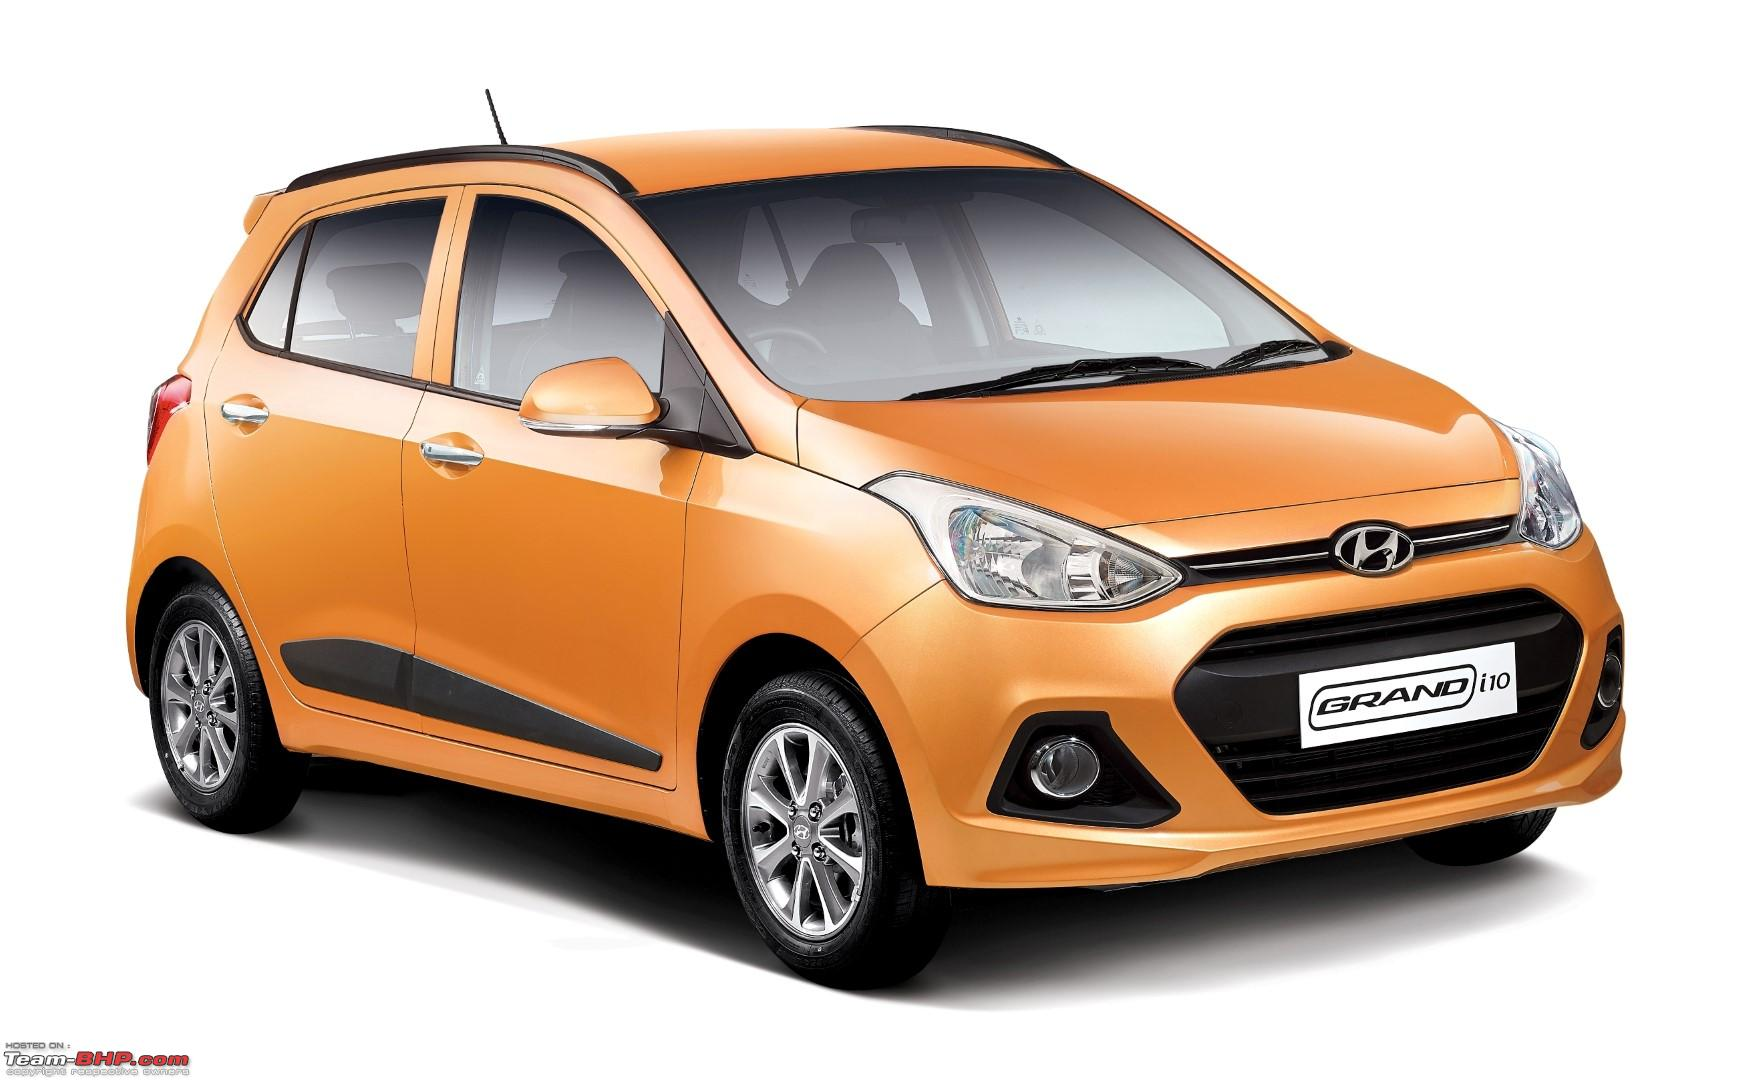 Top 10 diesel hatchback cars in india 2017